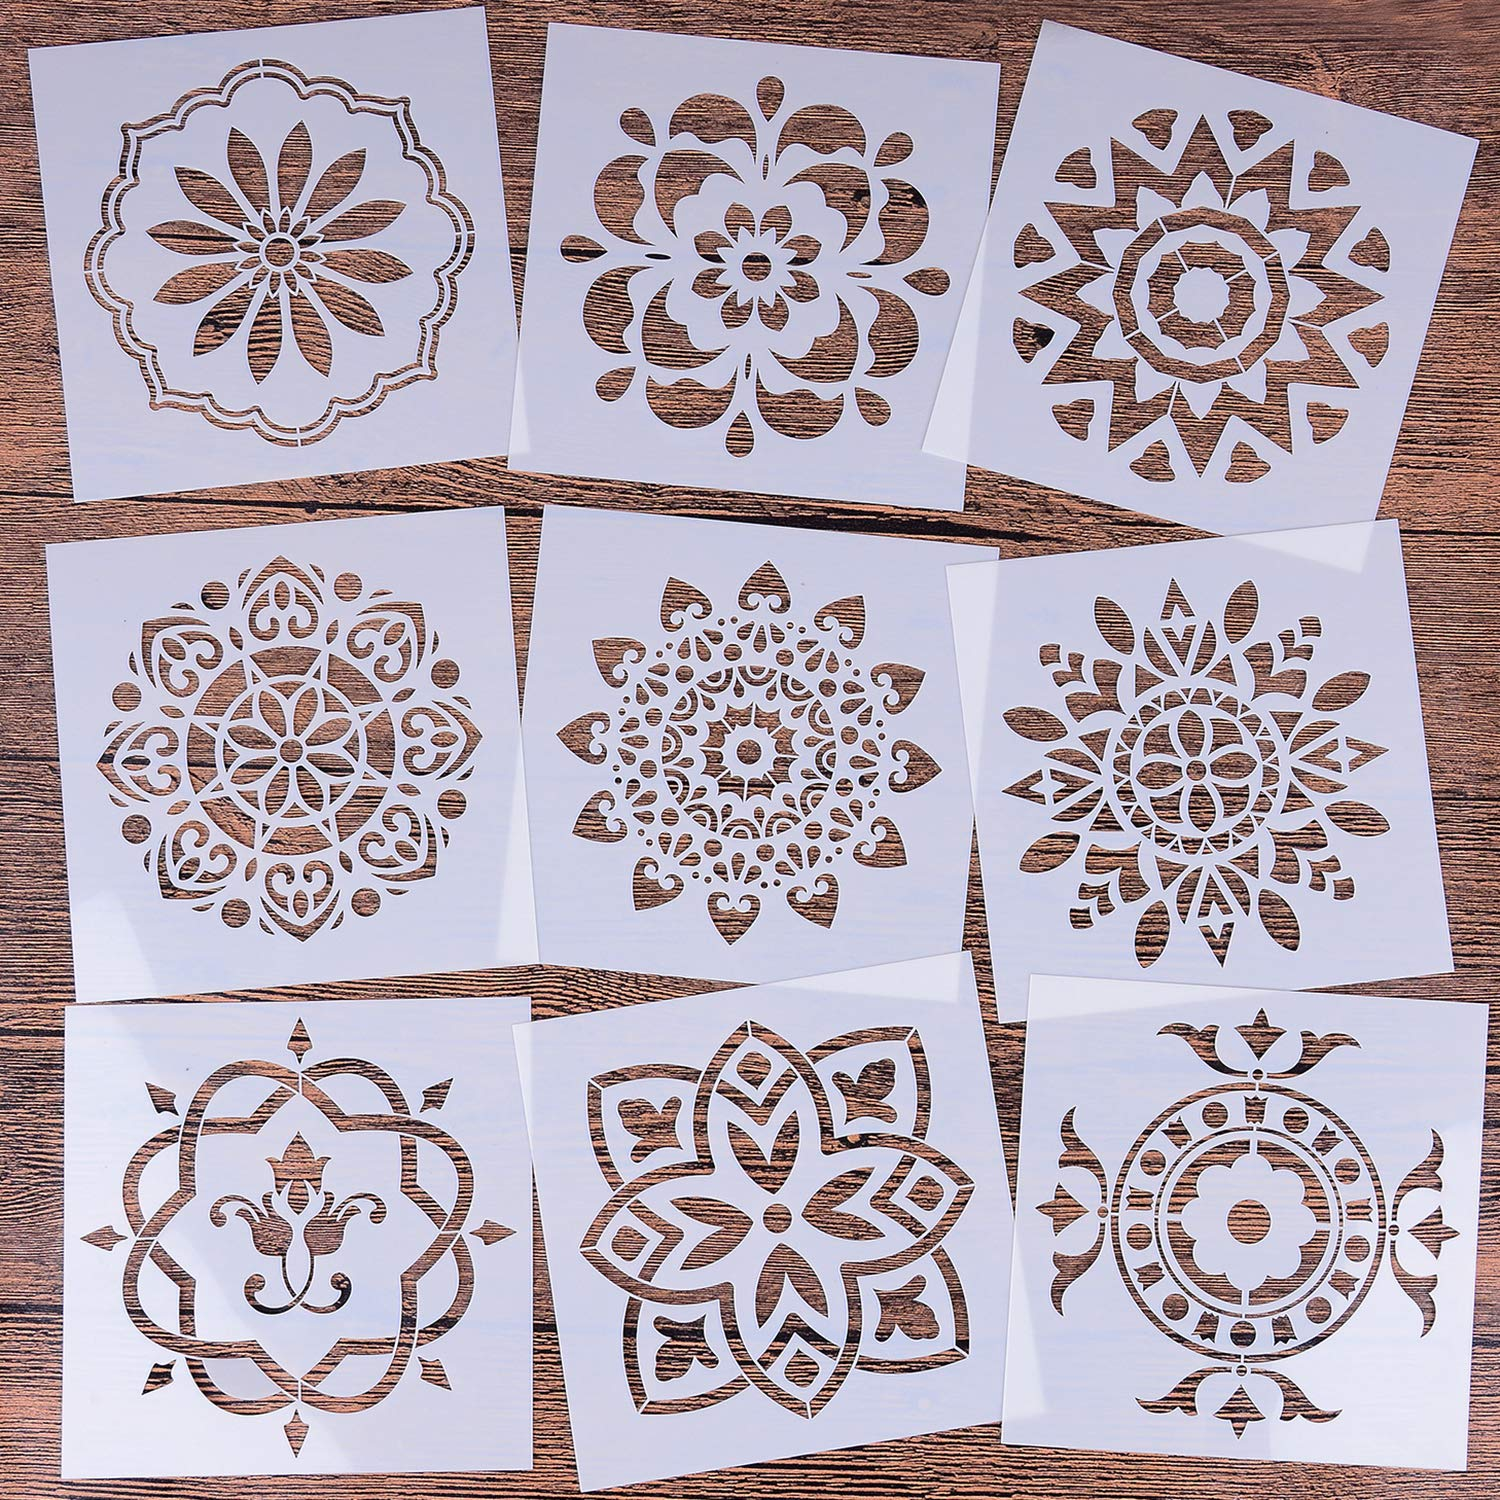 LOCOLO Mandala Reusable Stencil Set of 9 (6x6 inch) Painting Stencil, Laser Cut Painting Template for DIY Decor, Painting on Wood, Airbrush, Rocks and Walls Art by LOCOLO